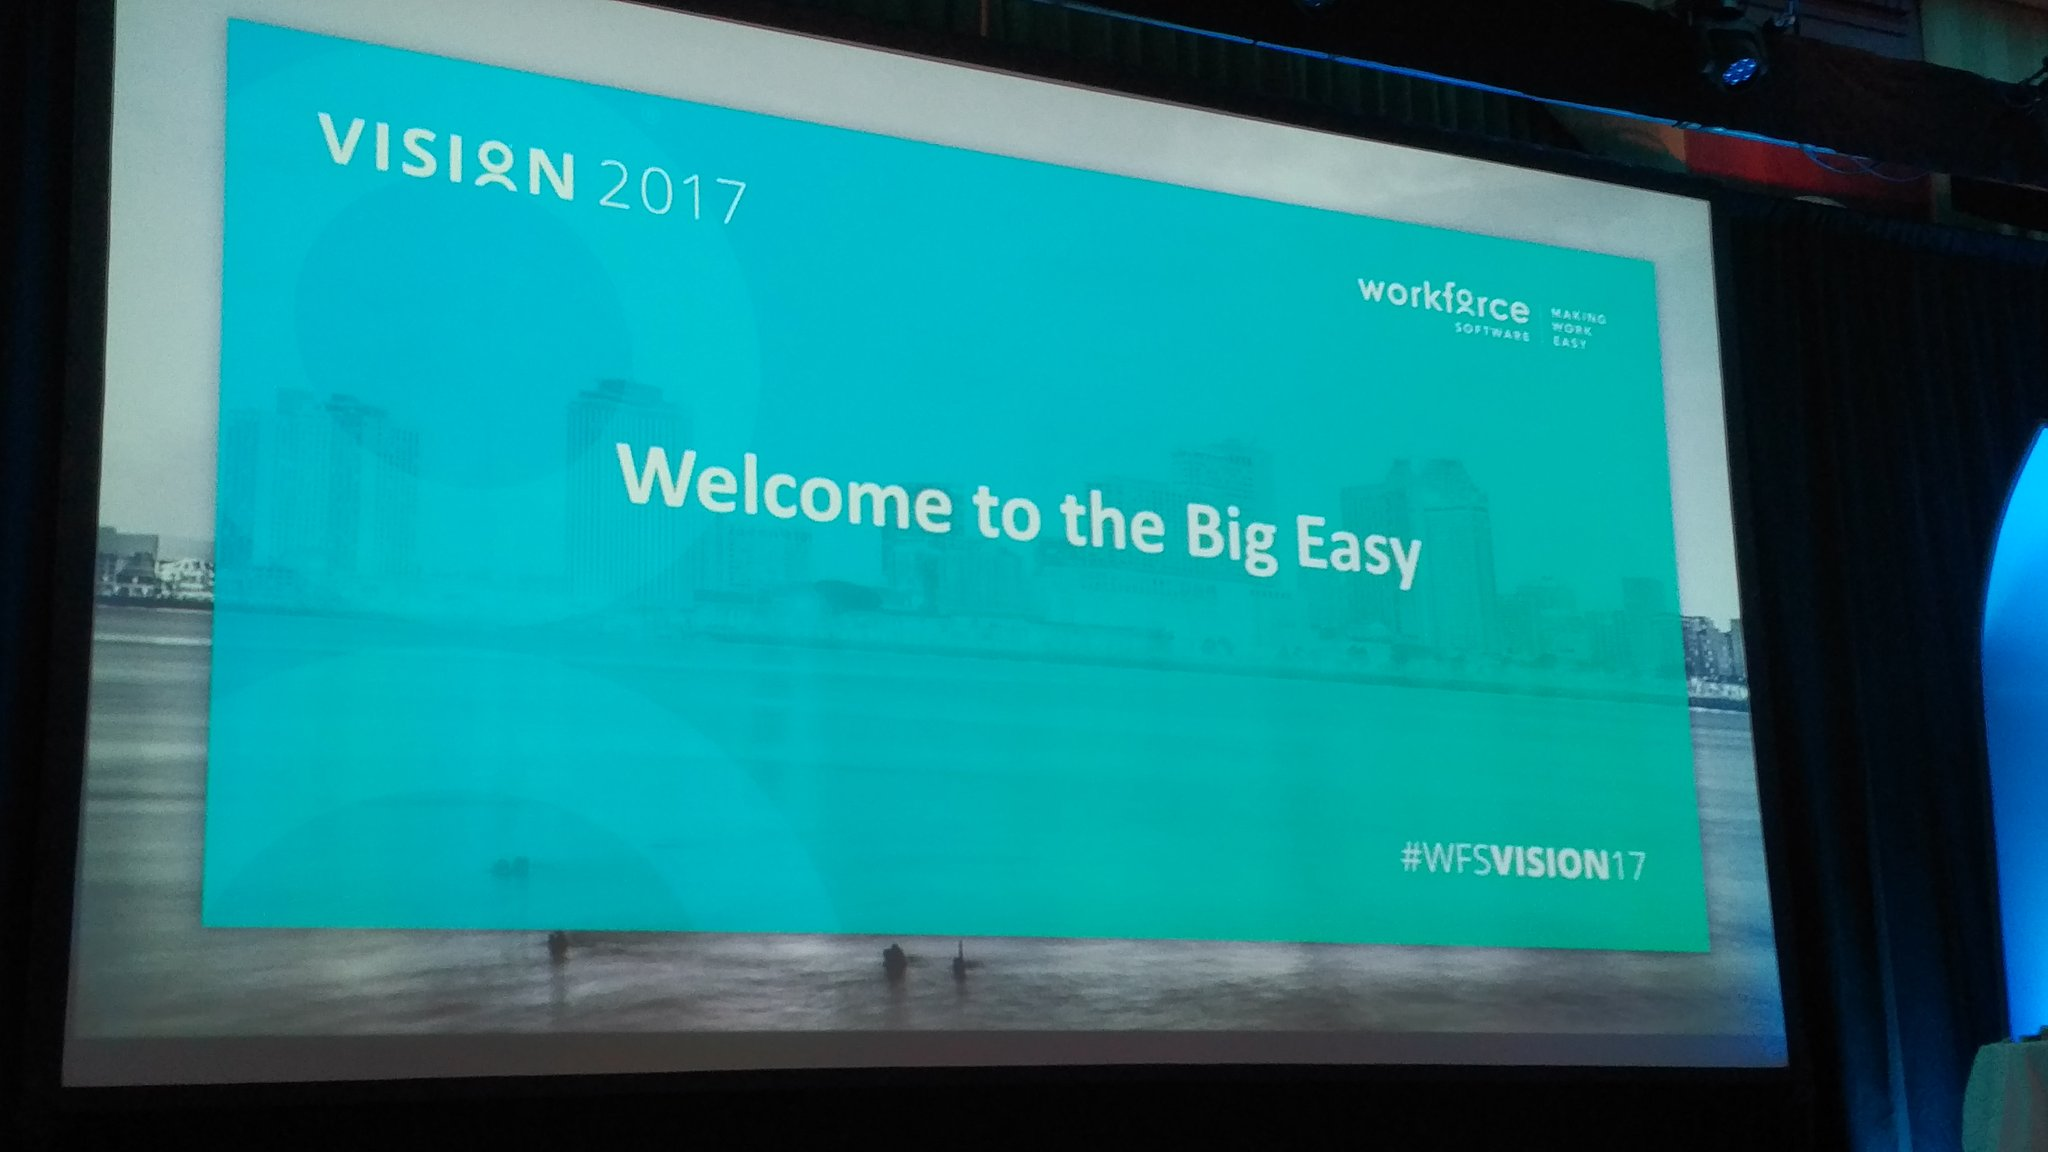 Ready for #wfsvision17 - [Tweetstorm]={ON} https://t.co/cZZMQ4ydc9